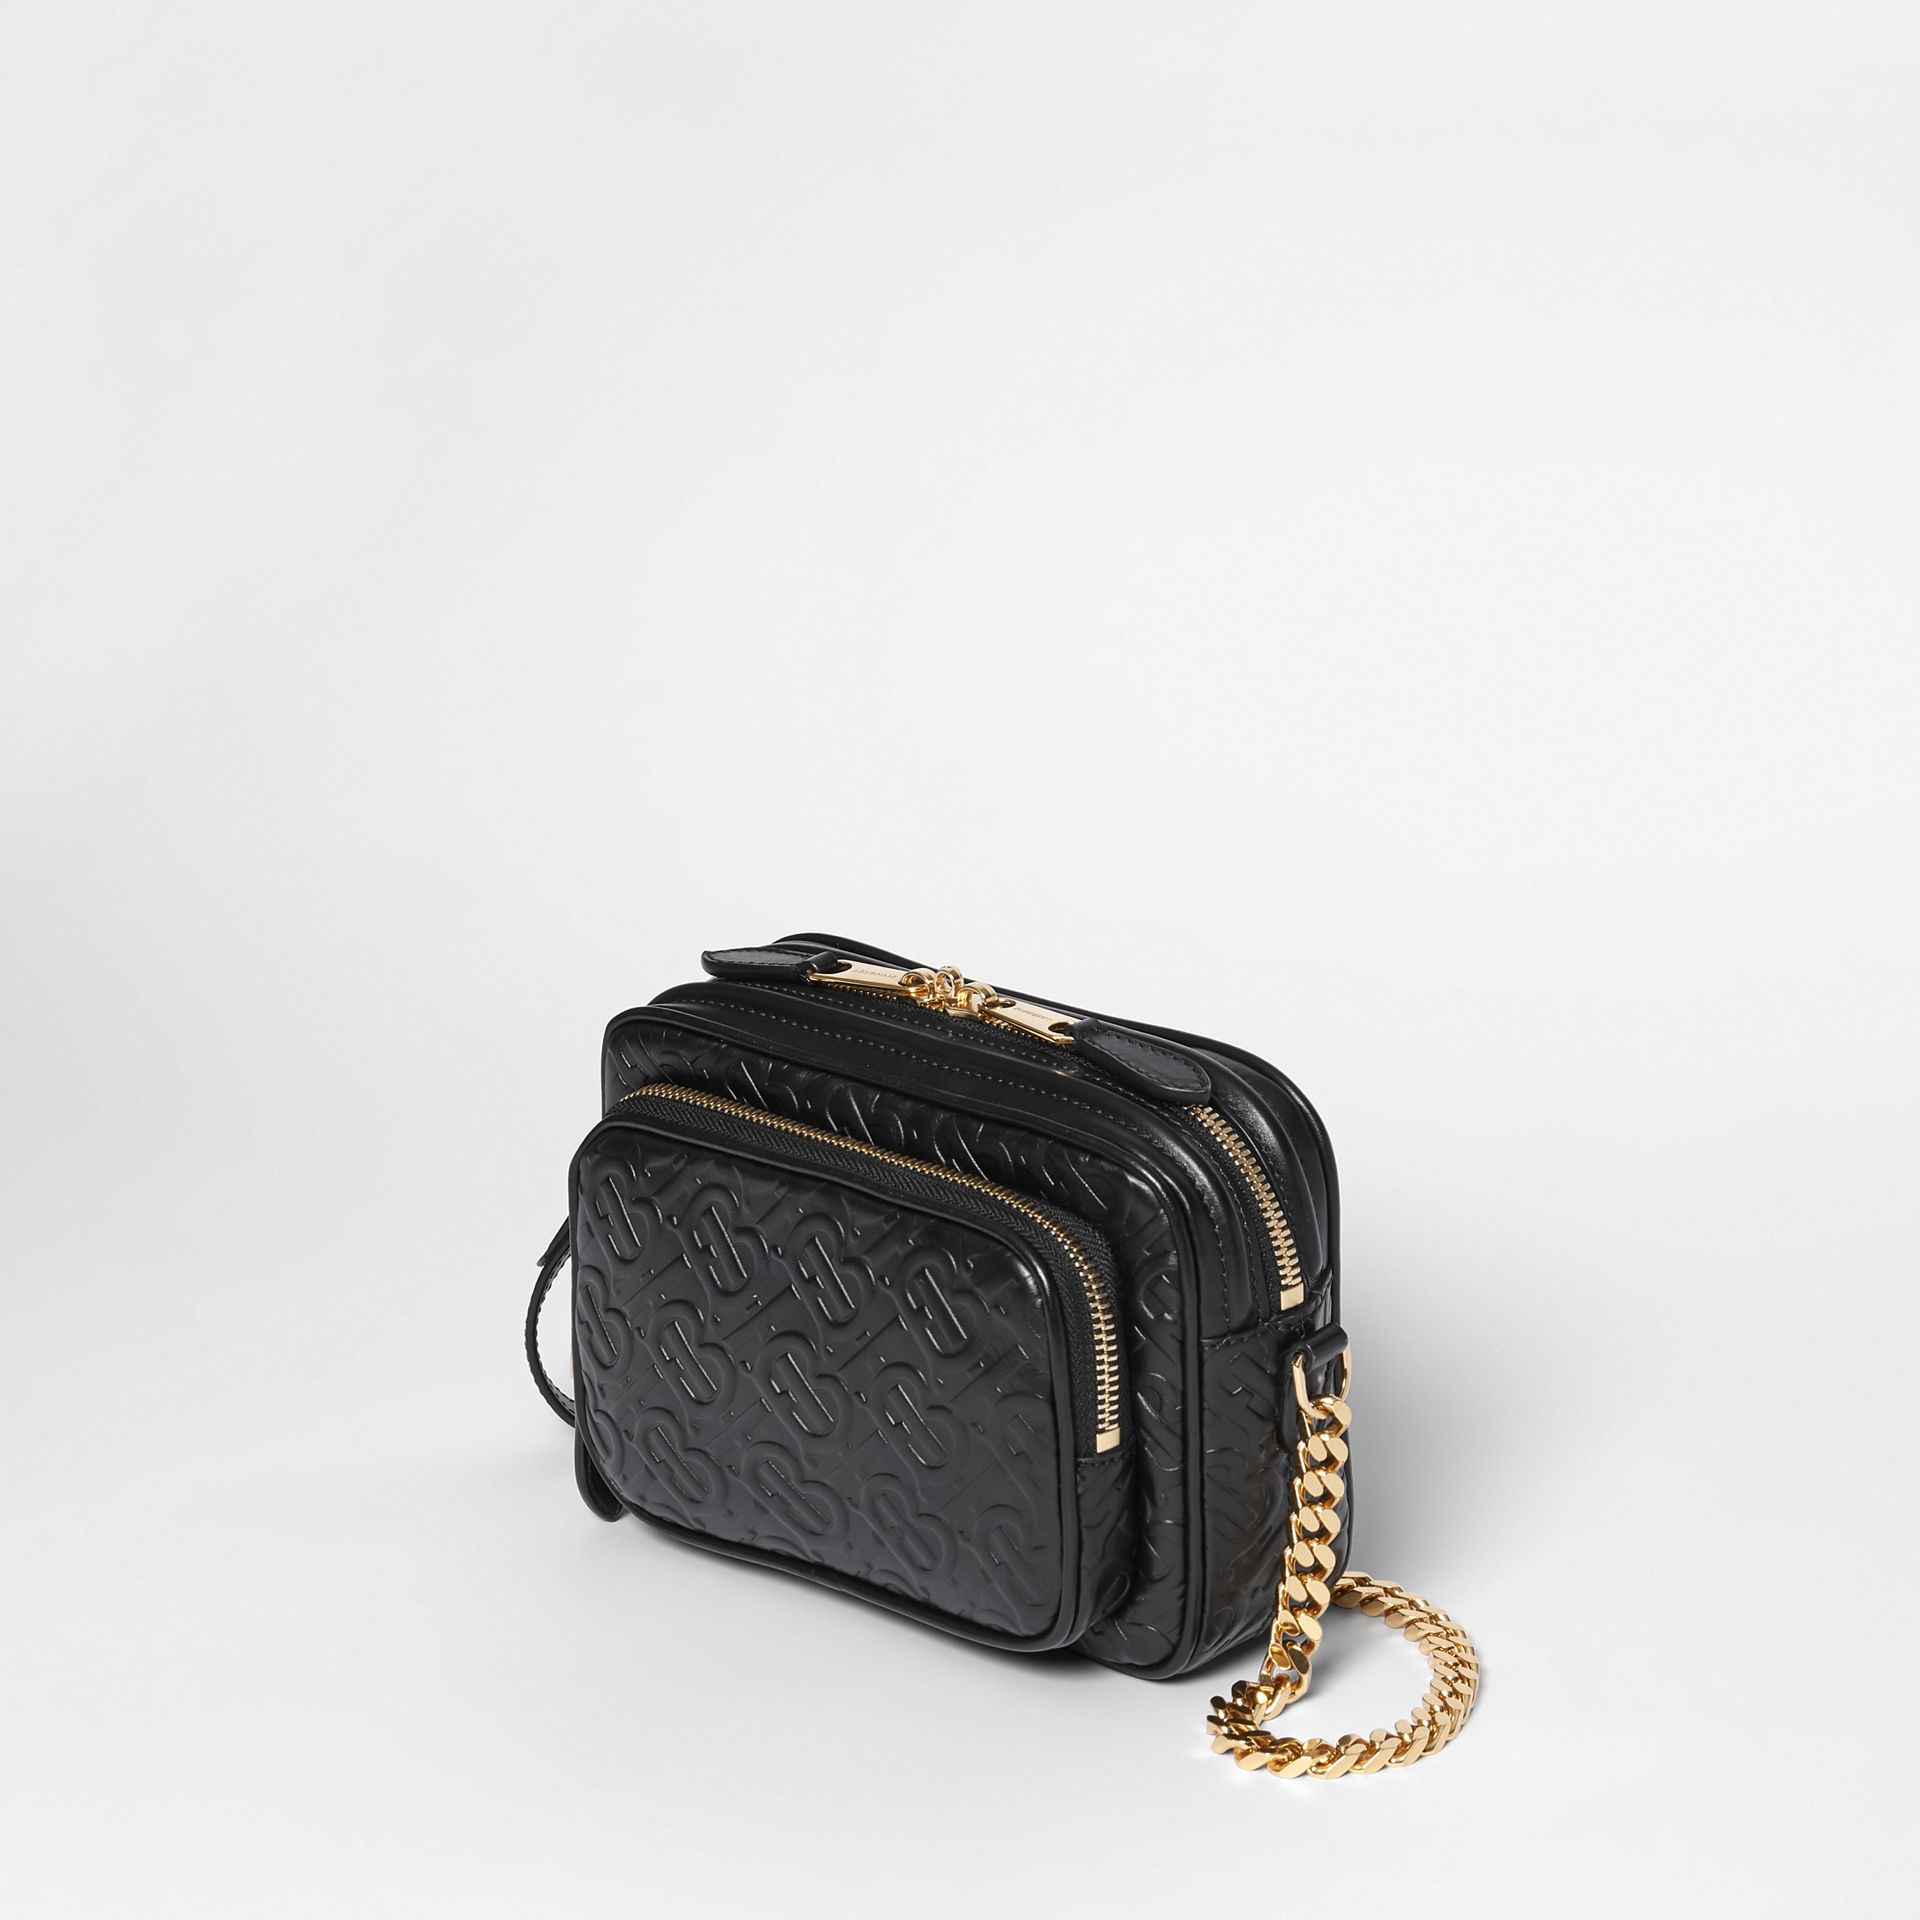 Monogram Leather Camera Bag in Black - Women | Burberry - gallery image 3